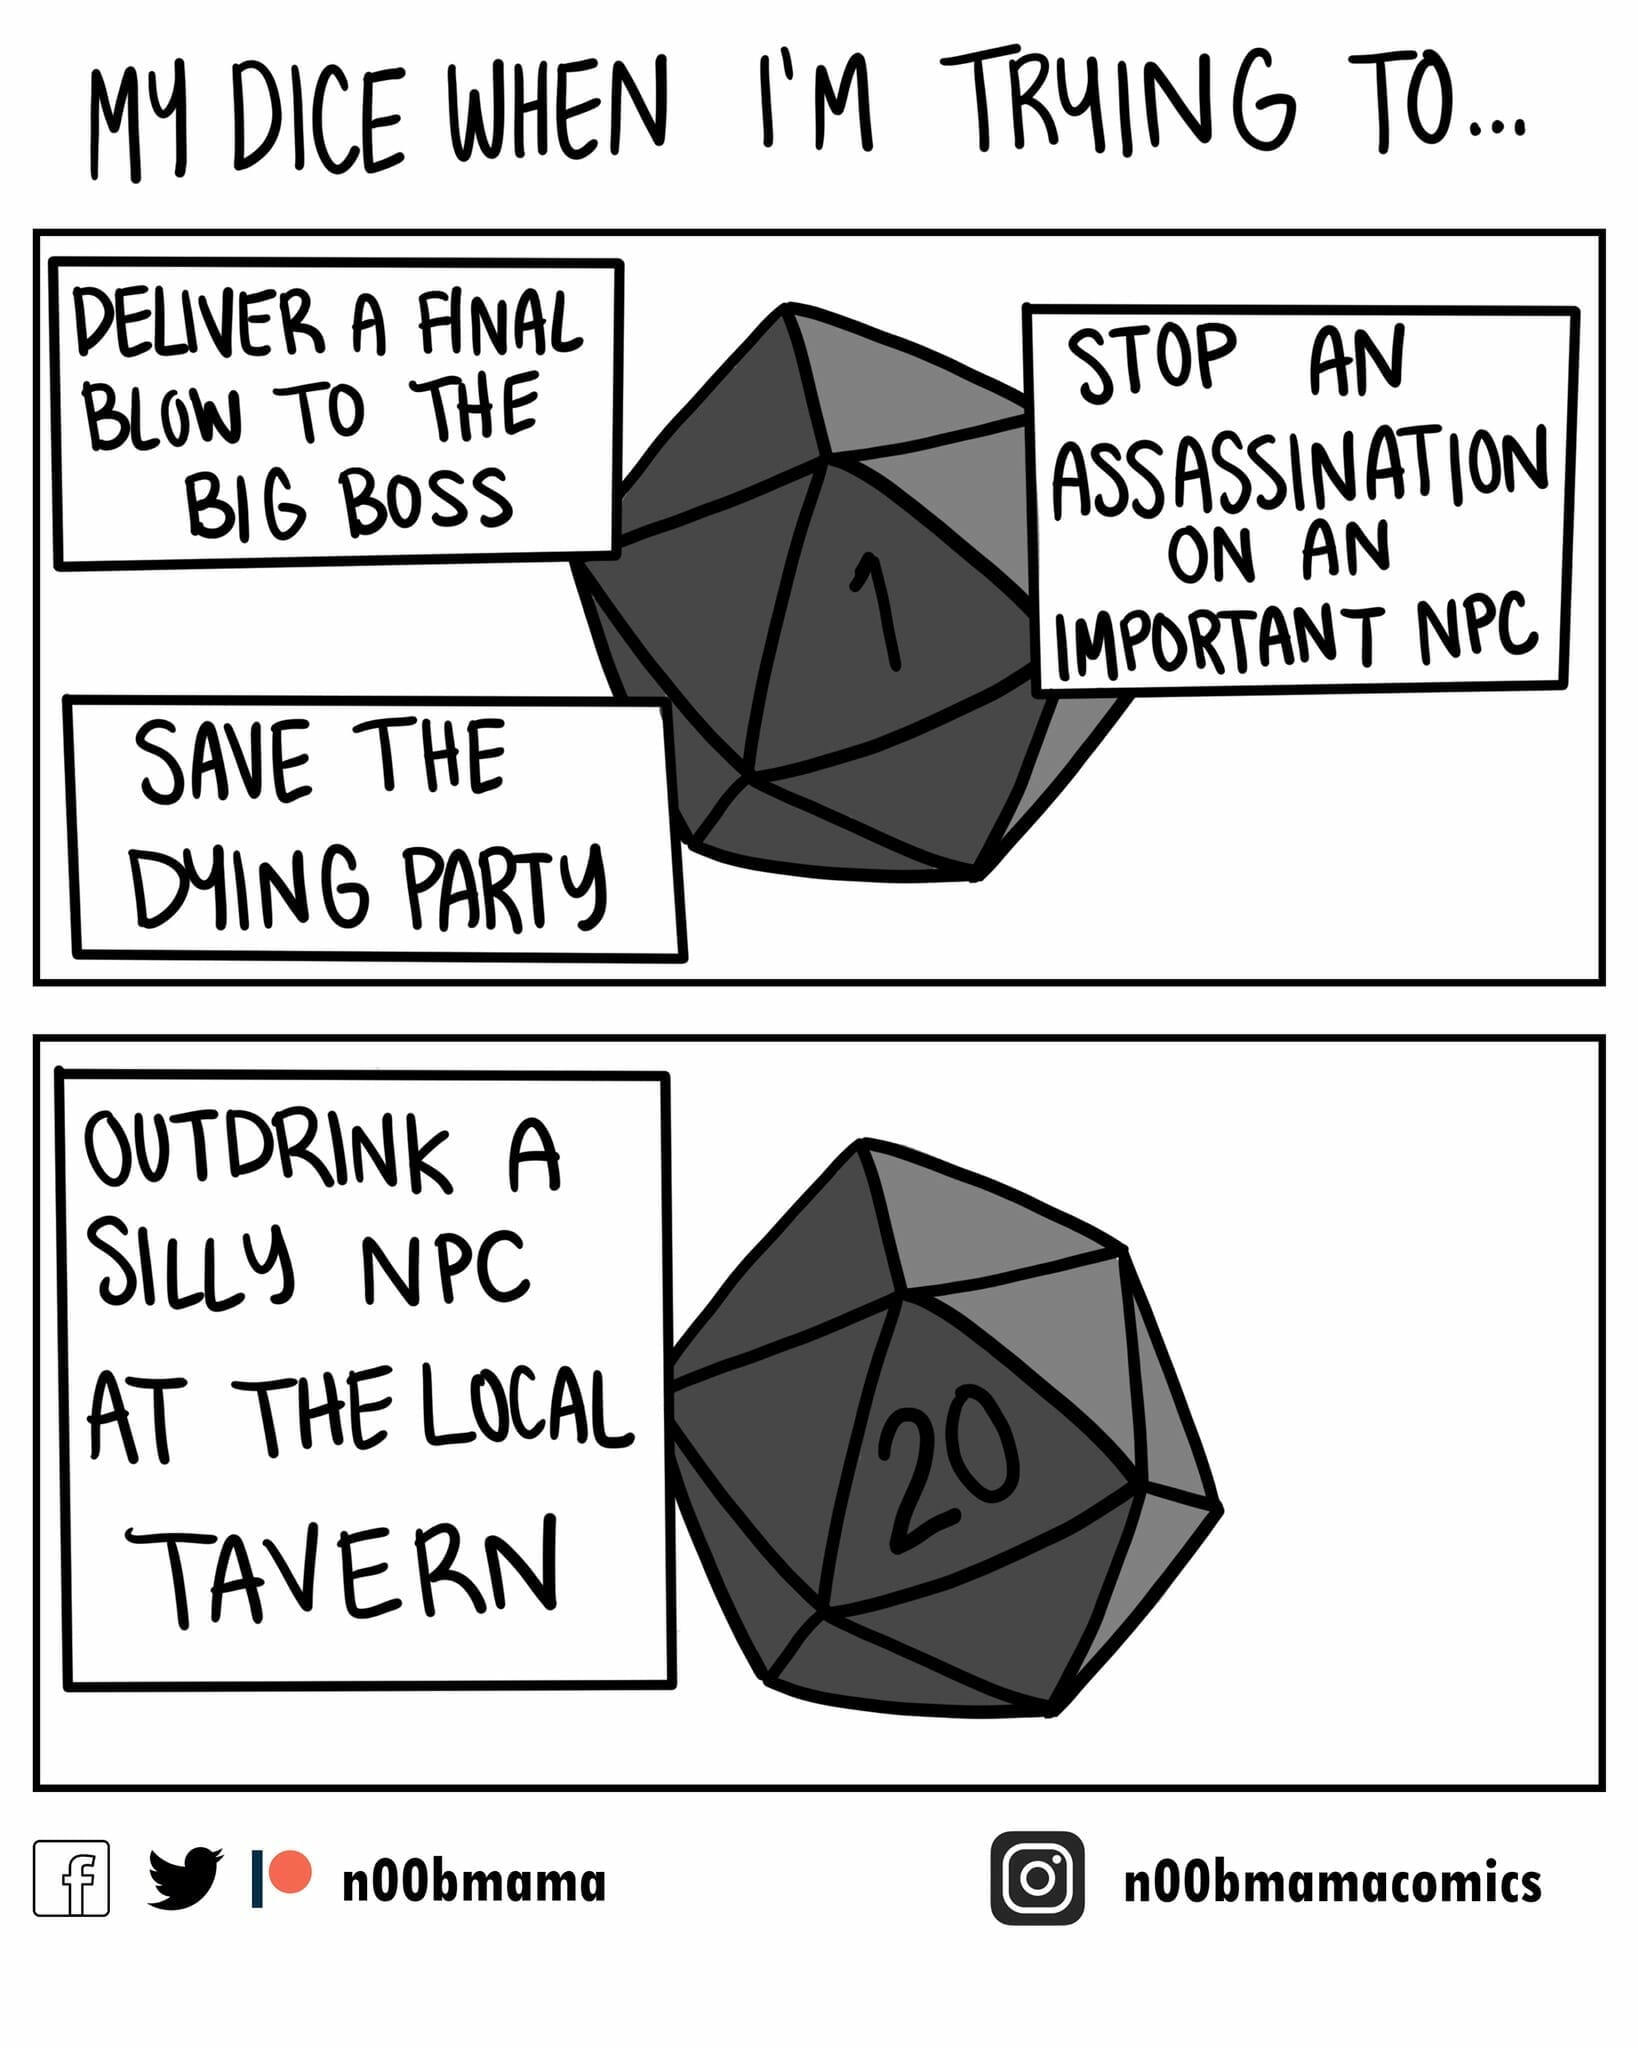 My dice when I'm trying to...